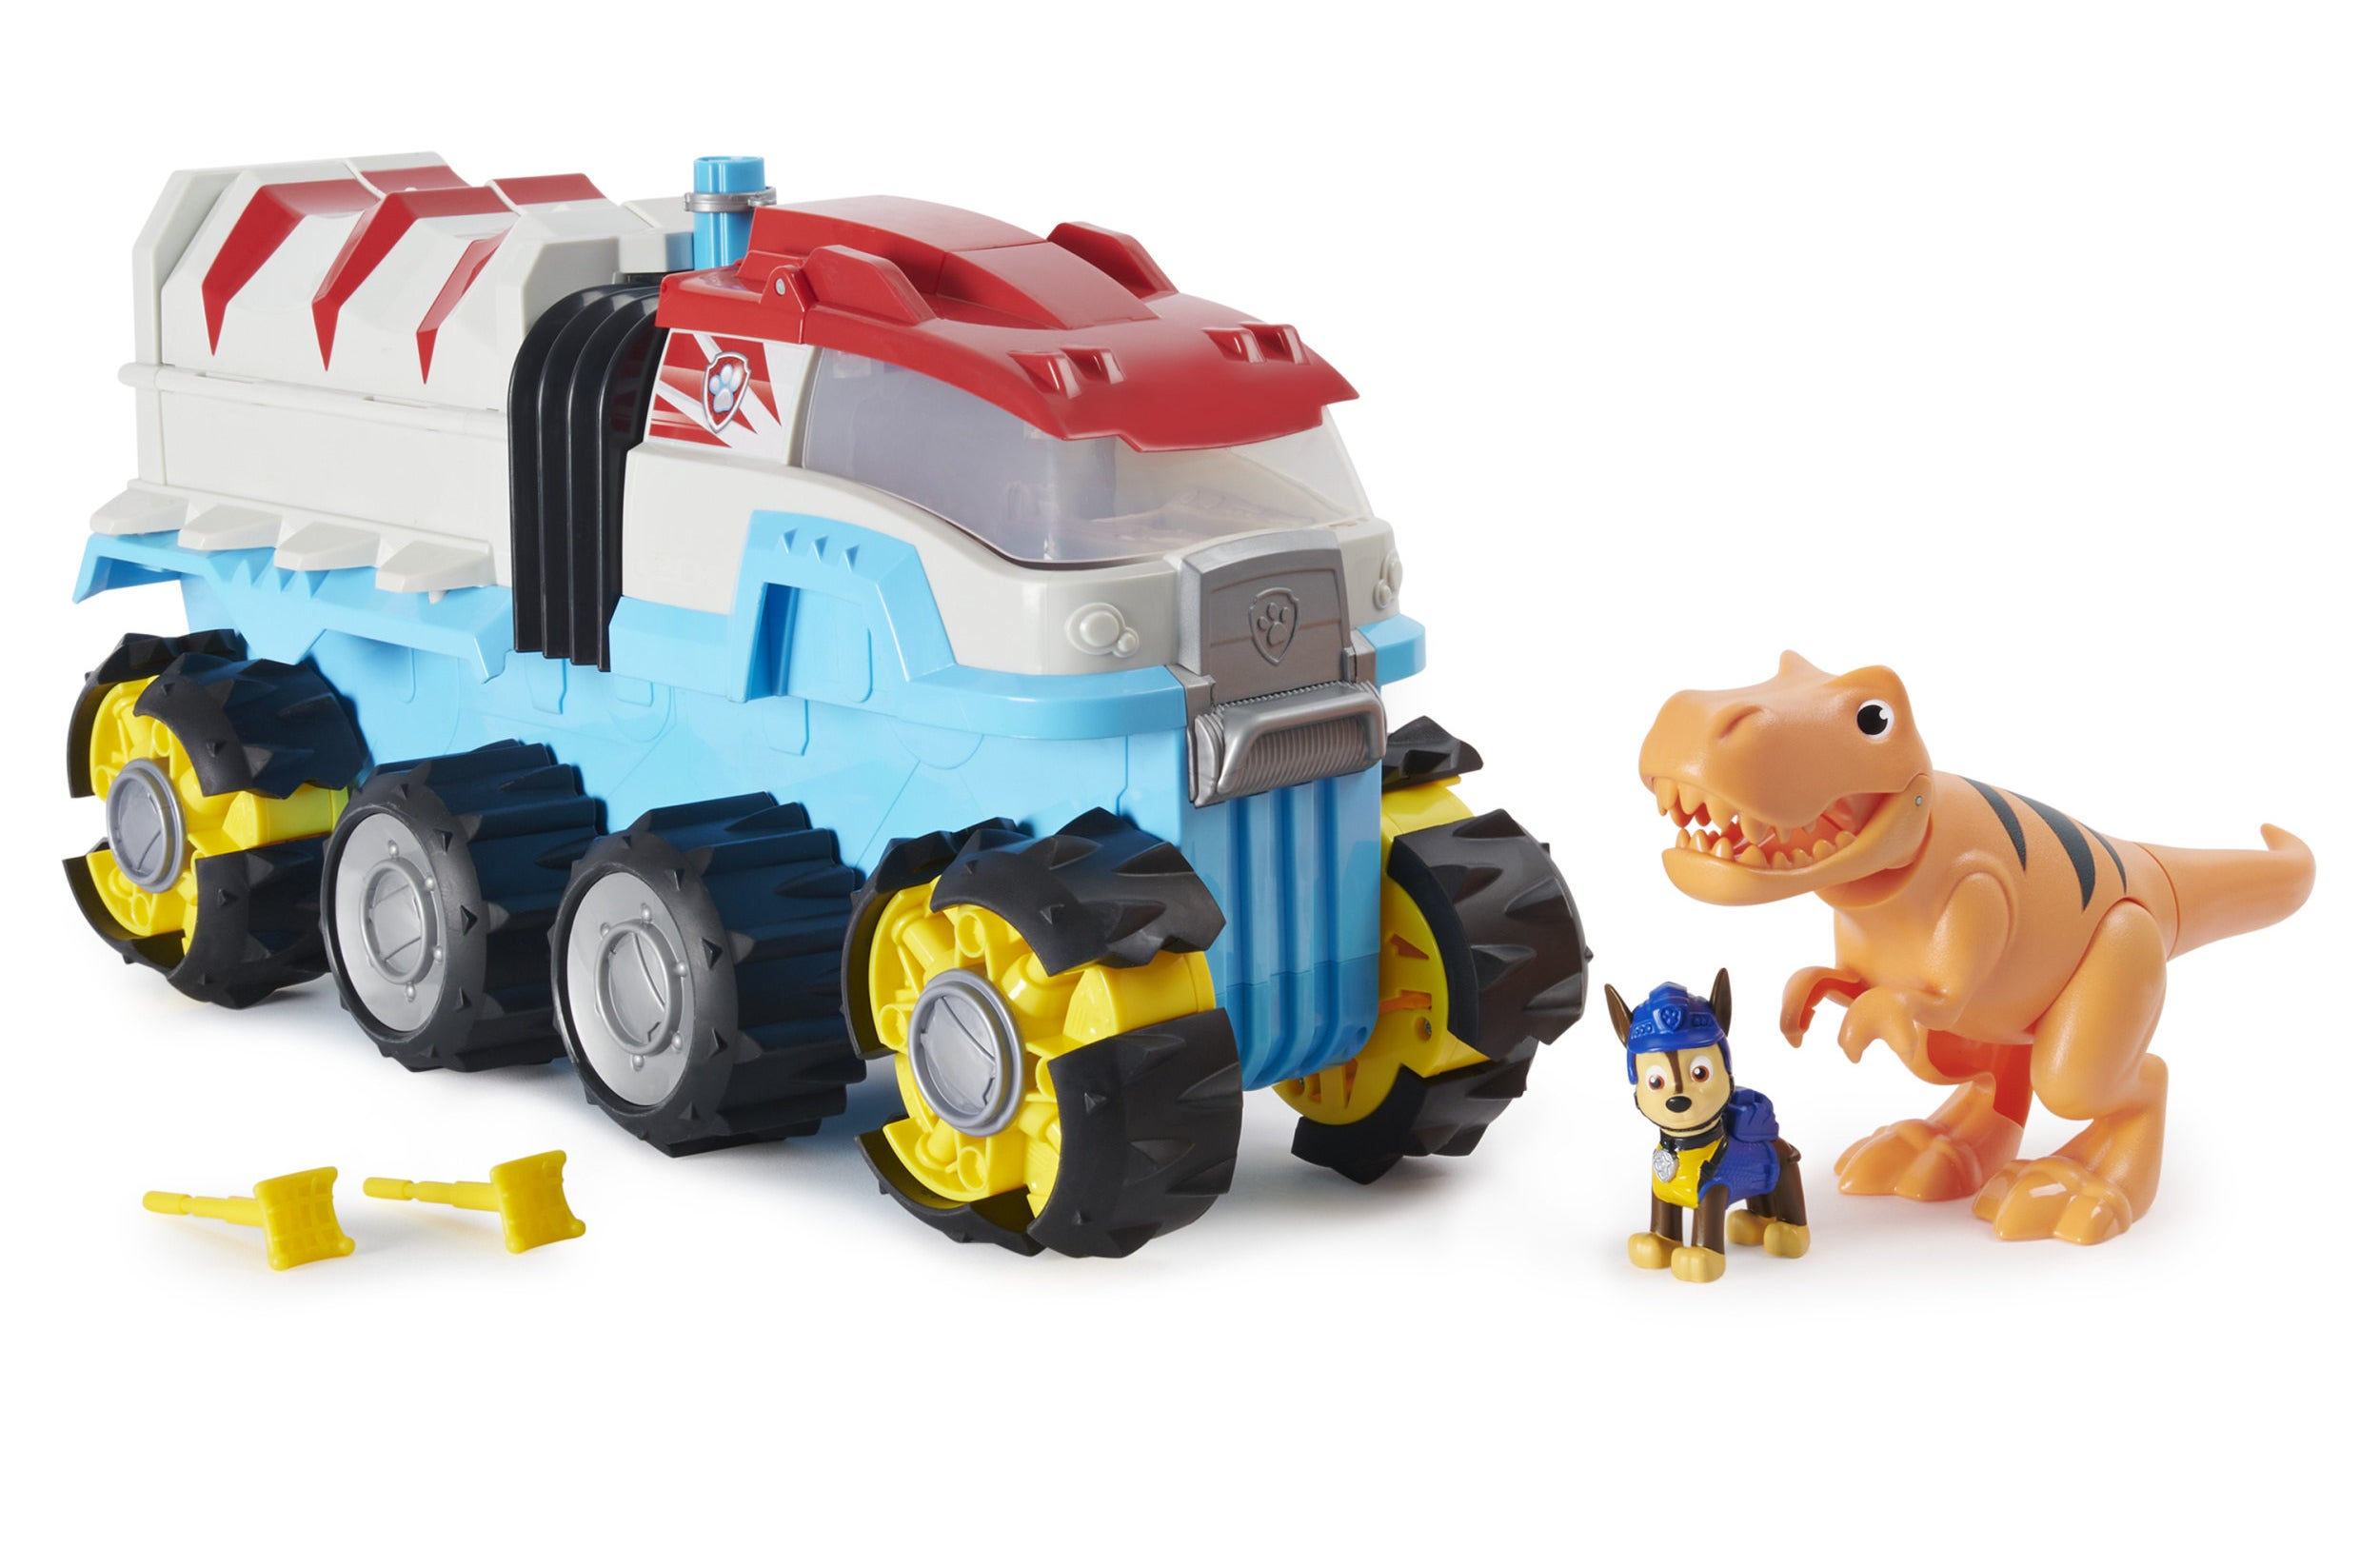 paw patrol vehicle with dinosaur and dog toy at the front